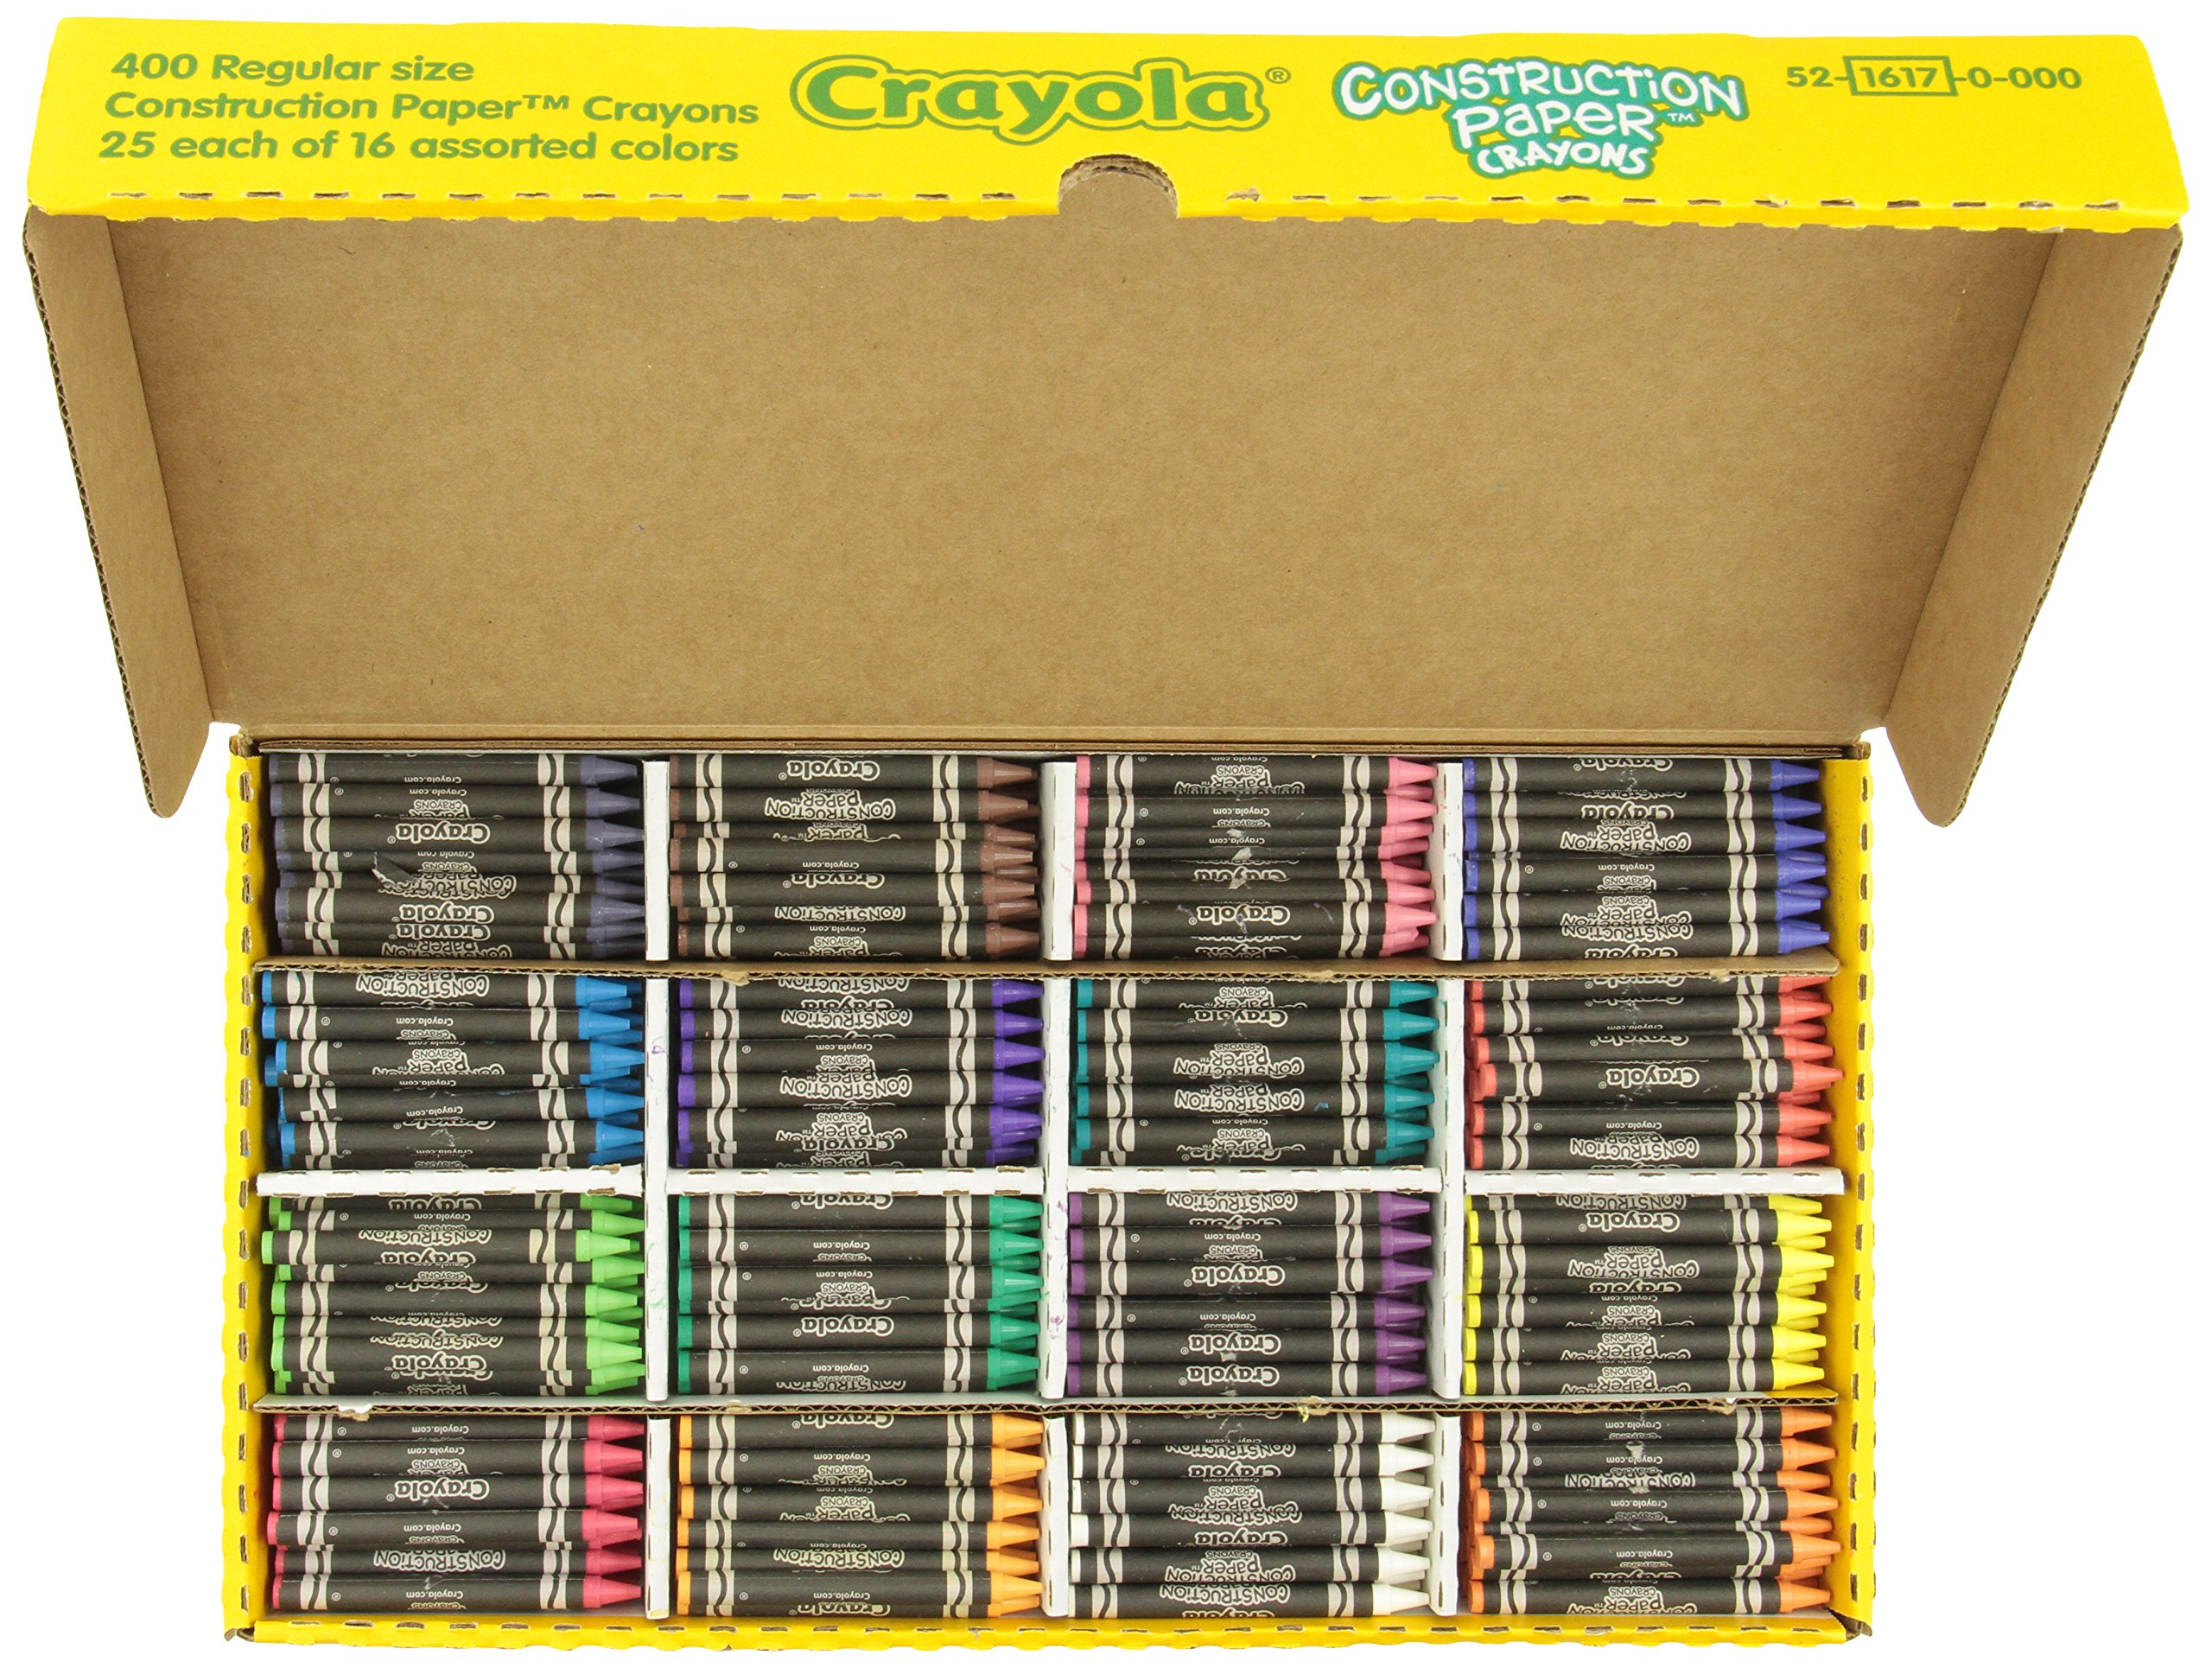 Crayola 52-1617 Class Pack Crayola Construction Paper Crayons, 25 ea. of 16 Colors, 400/Set by Crayola